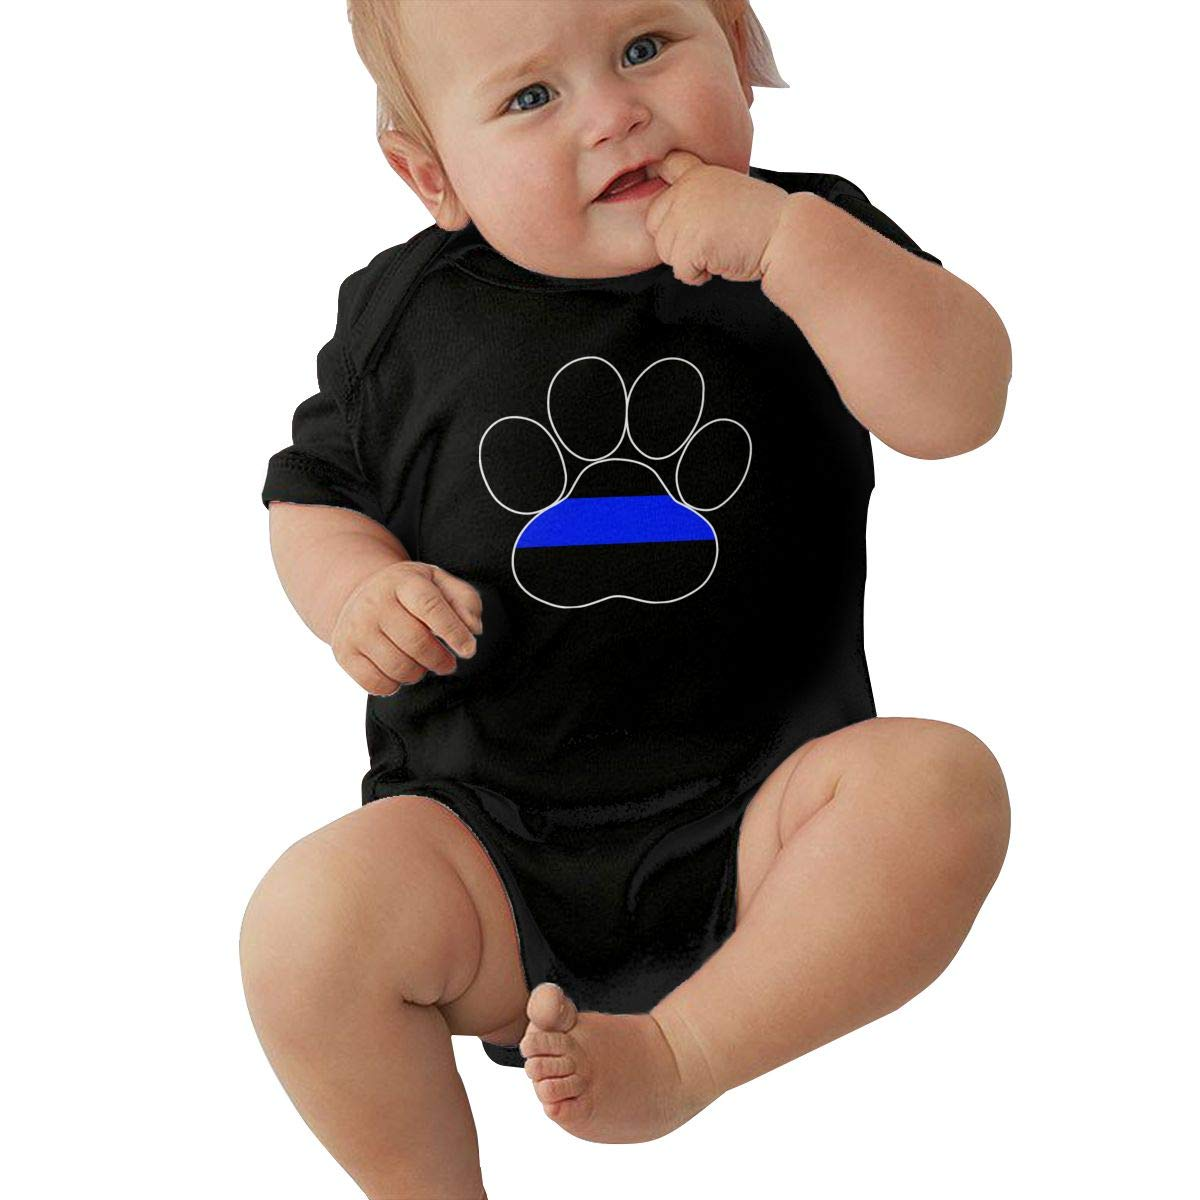 Fashion Thin Blue Line K-9 Paw Jumpsuit Short Sleeve Cotton Bodysuit for Baby Boys and Girls